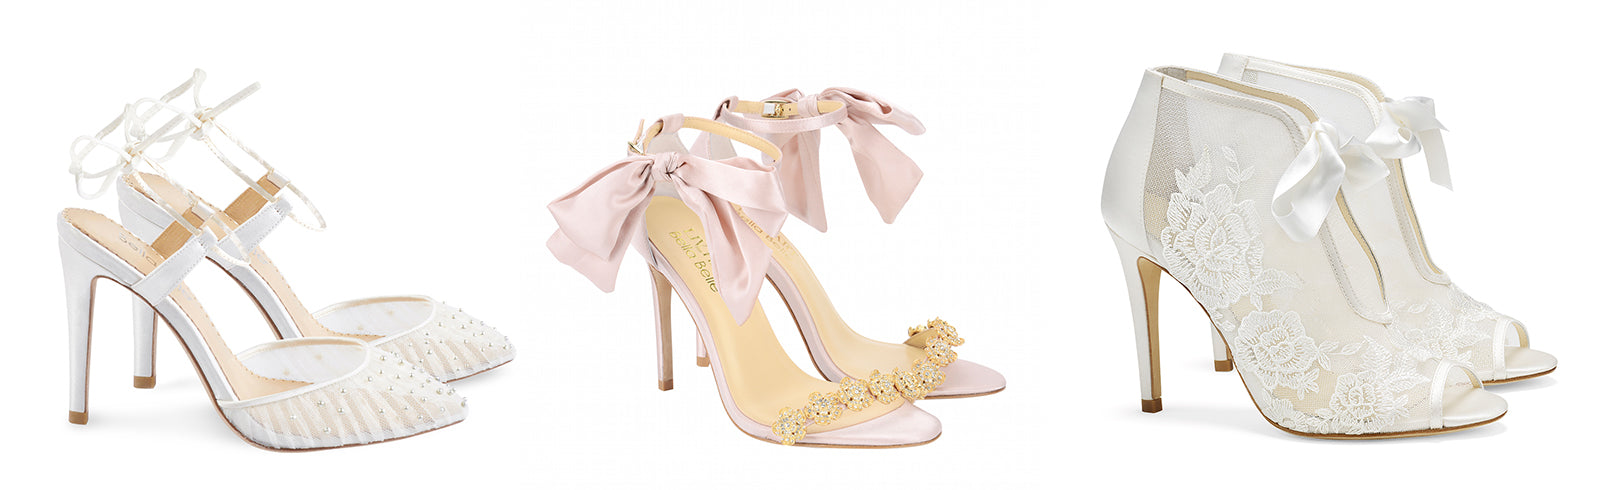 bella belle monique lhuillier wedding dress designer wedding shoes